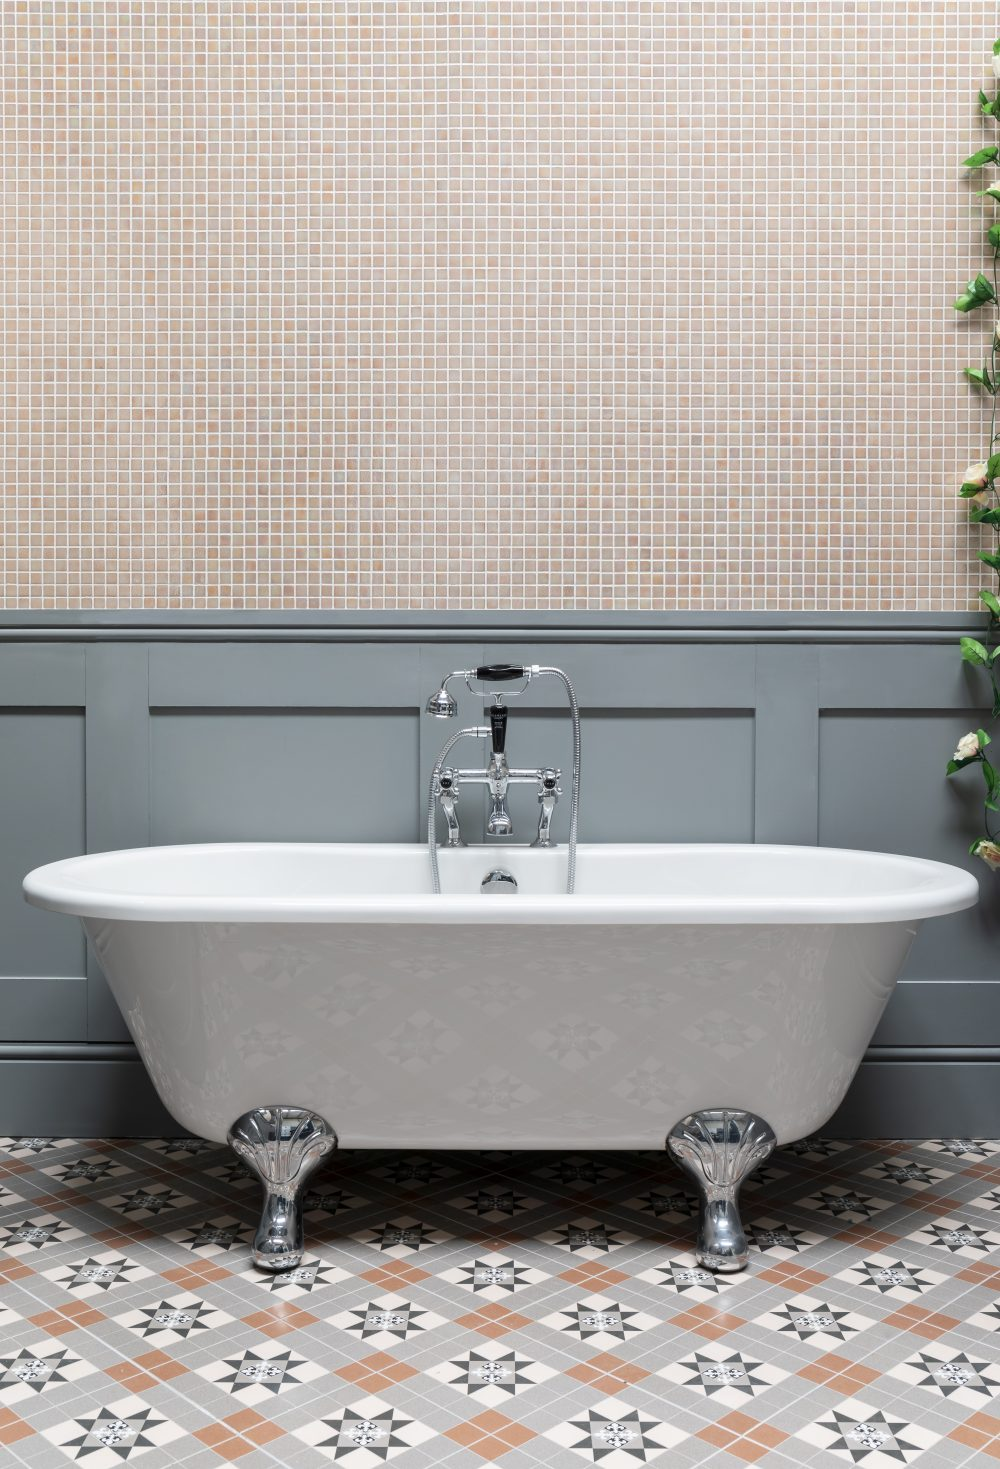 The Leinster Bath with Clattergate Tiles